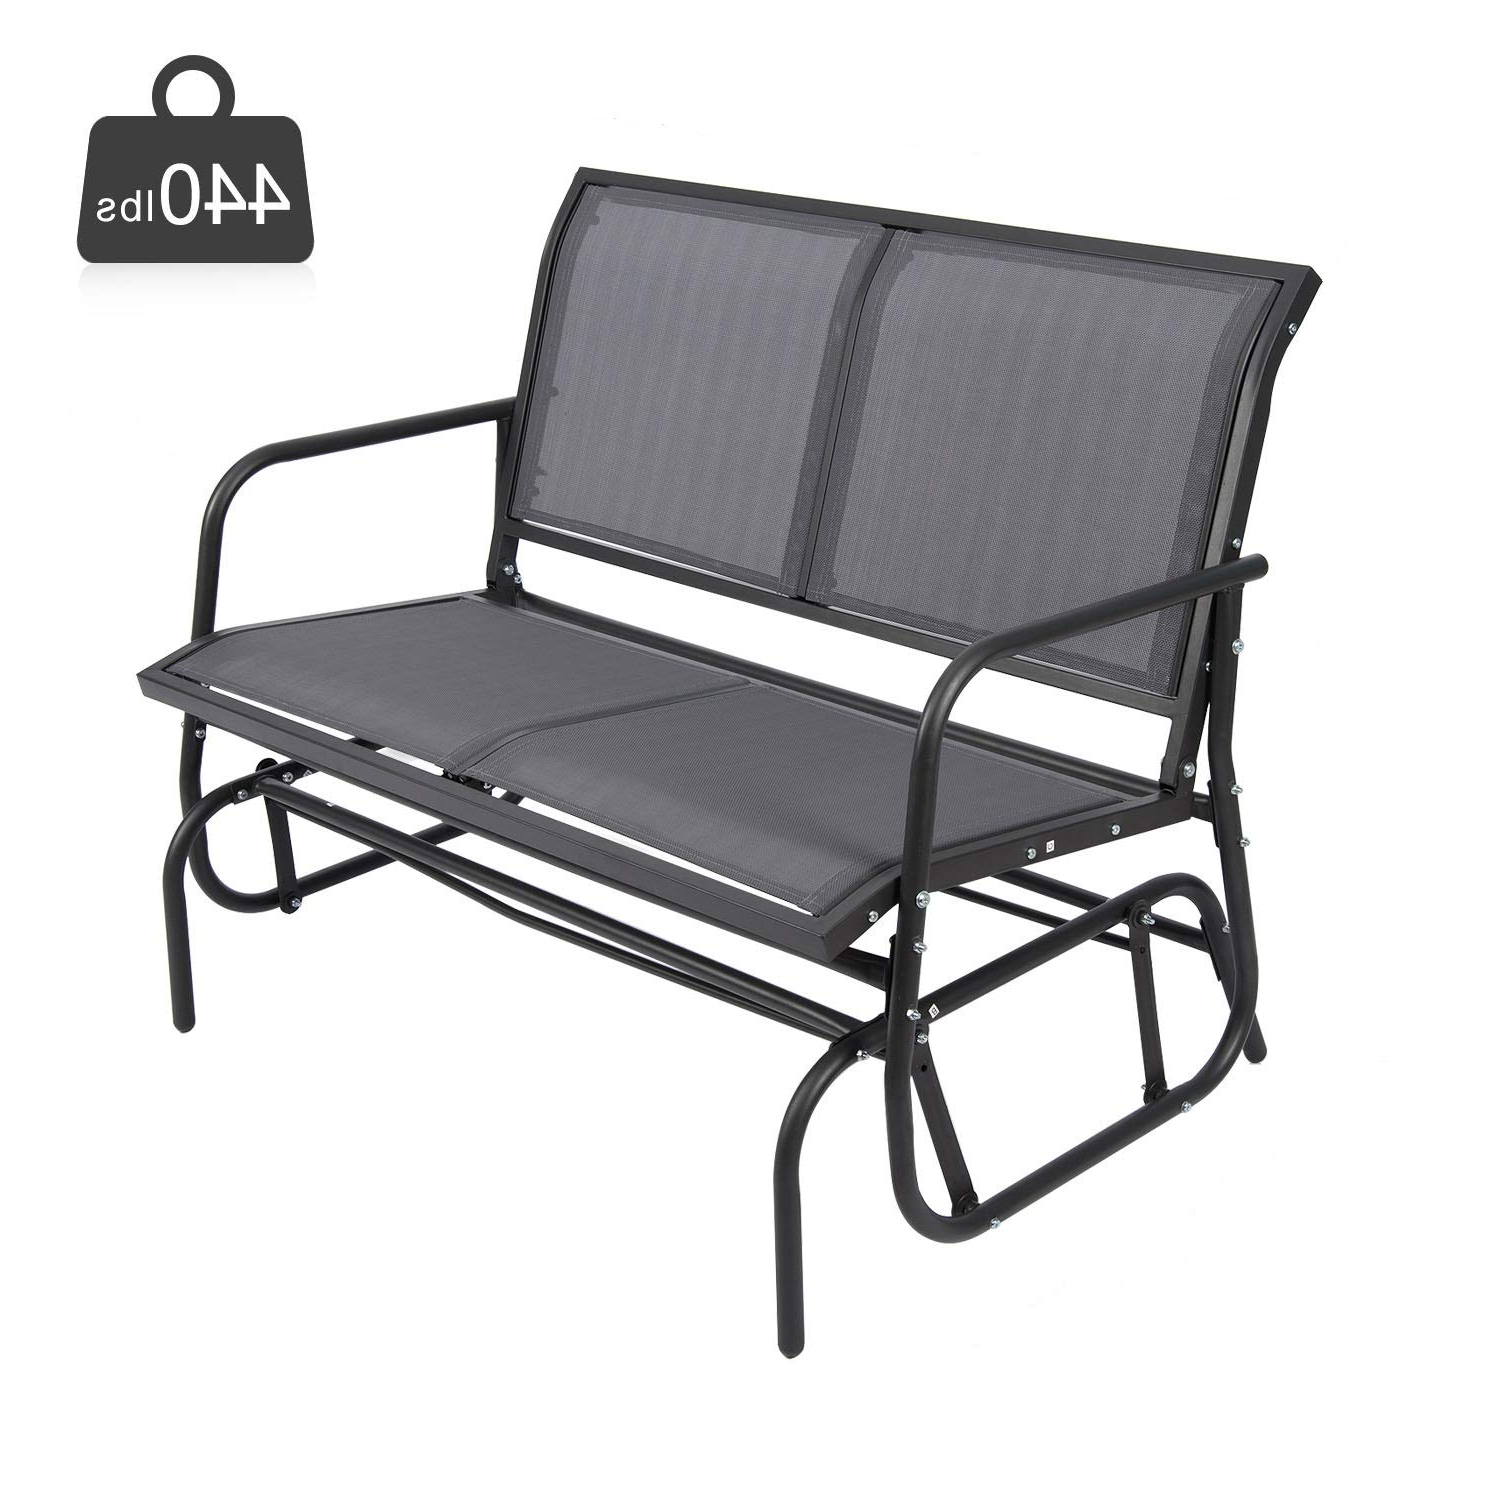 Latest Outdoor Steel Patio Swing Glider Benches With Regard To Amazon: Fullwatt Outdoor Swing Glider Chair, Patio Bench (View 4 of 30)